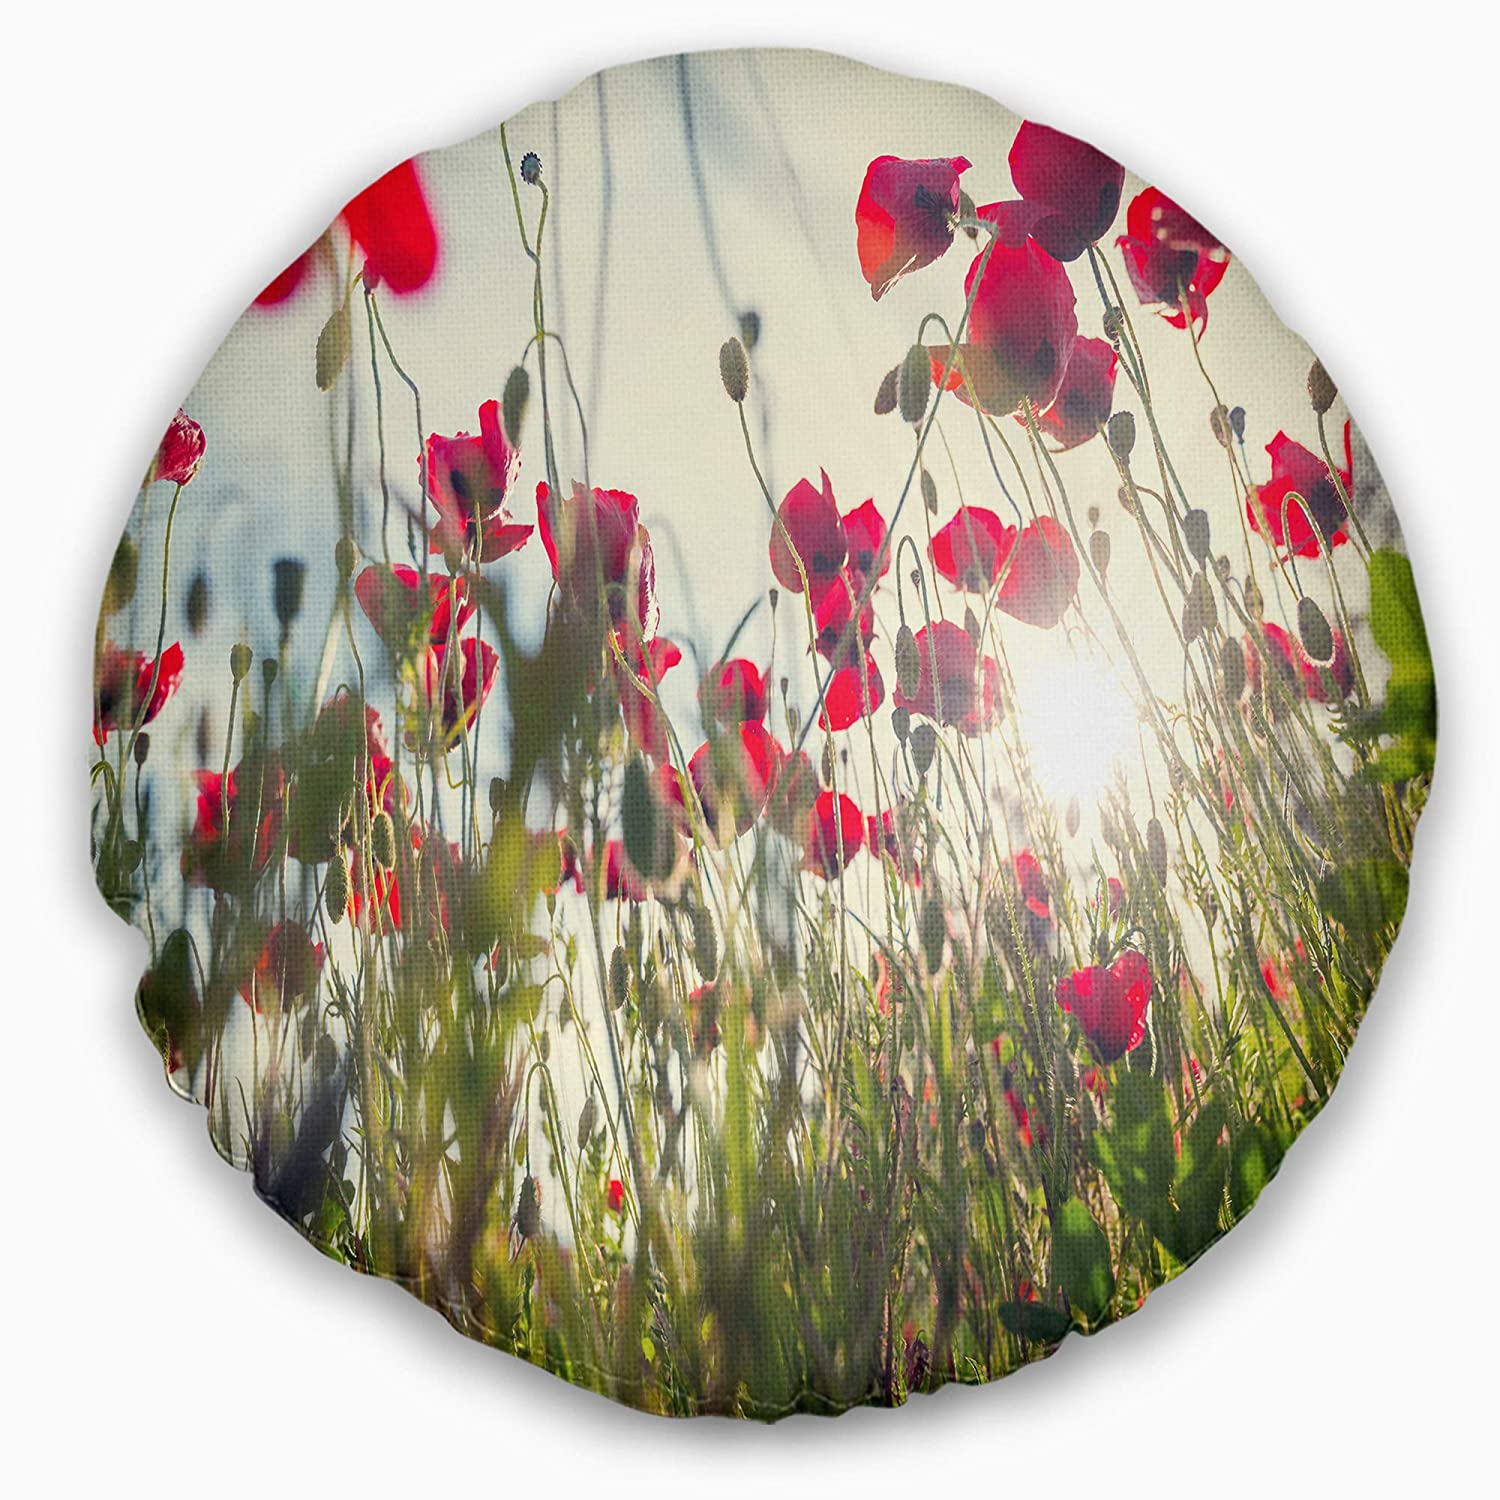 Designart CU12468-20-20-C Poppy Flowers on Summer Meadow' Floral Round Cushion Cover for Living Room, Sofa Throw Pillow 20'